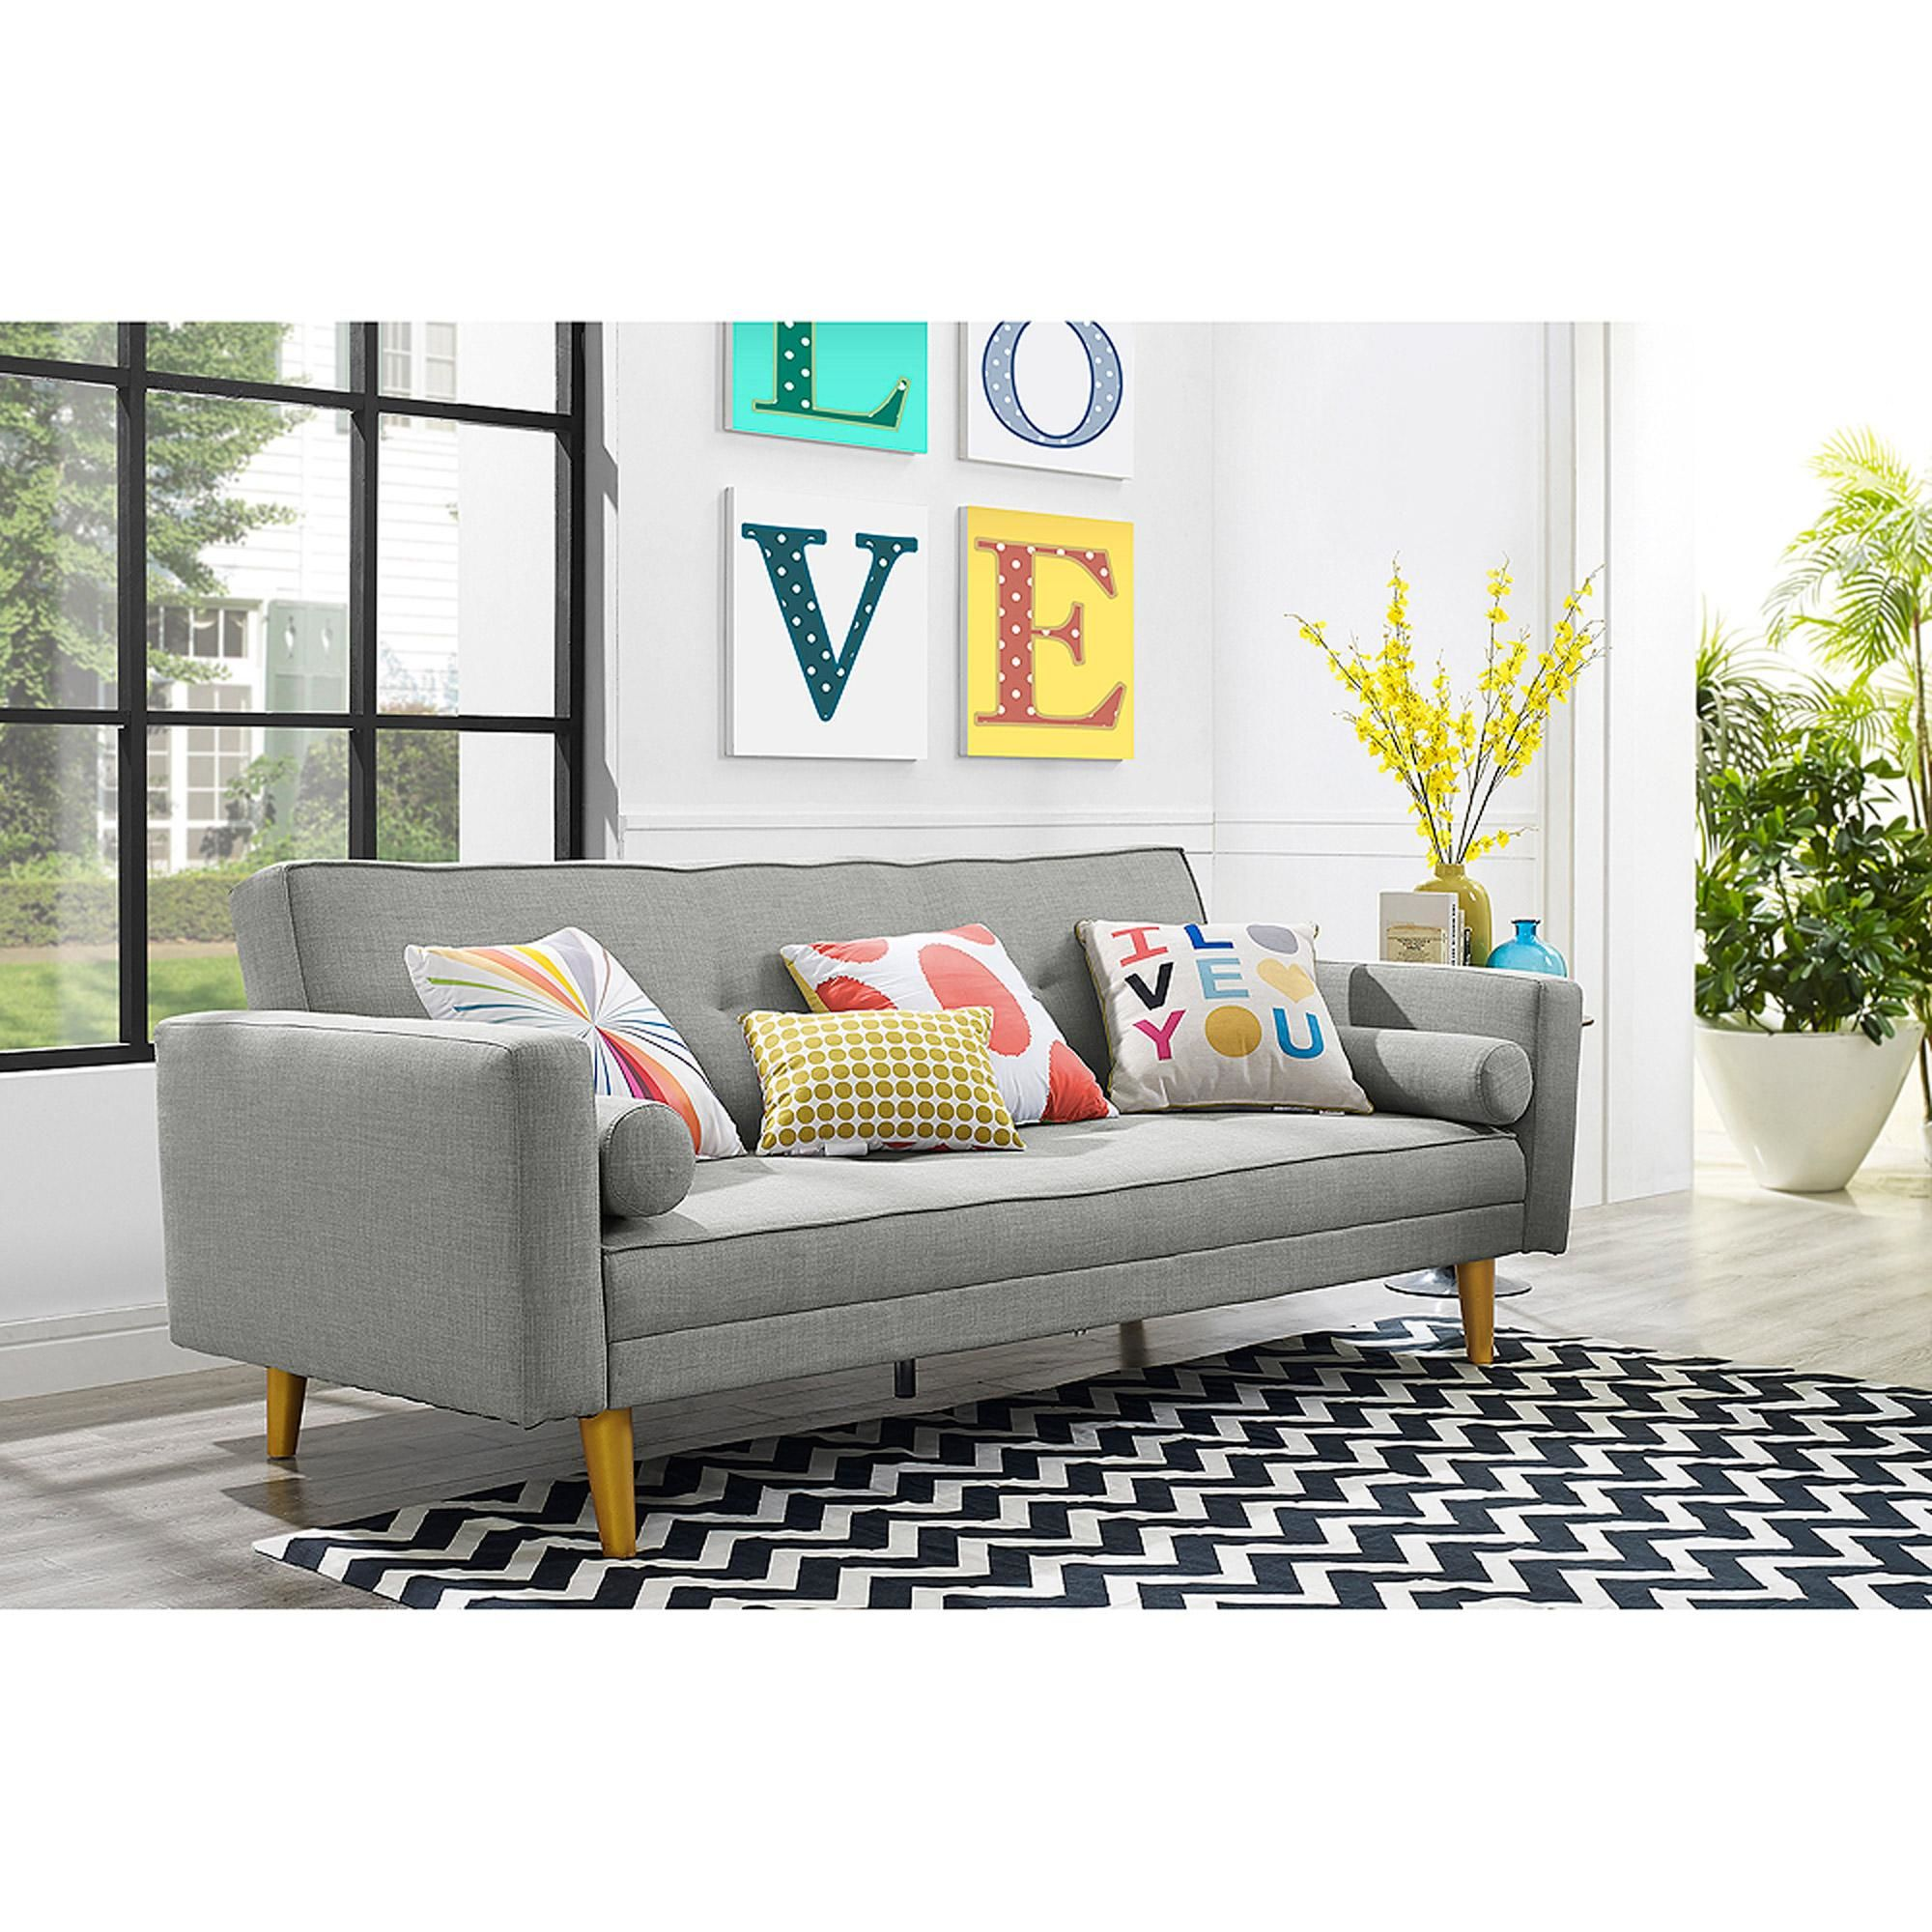 cute sofa set sale collection-Best Of sofa Set Sale Architecture